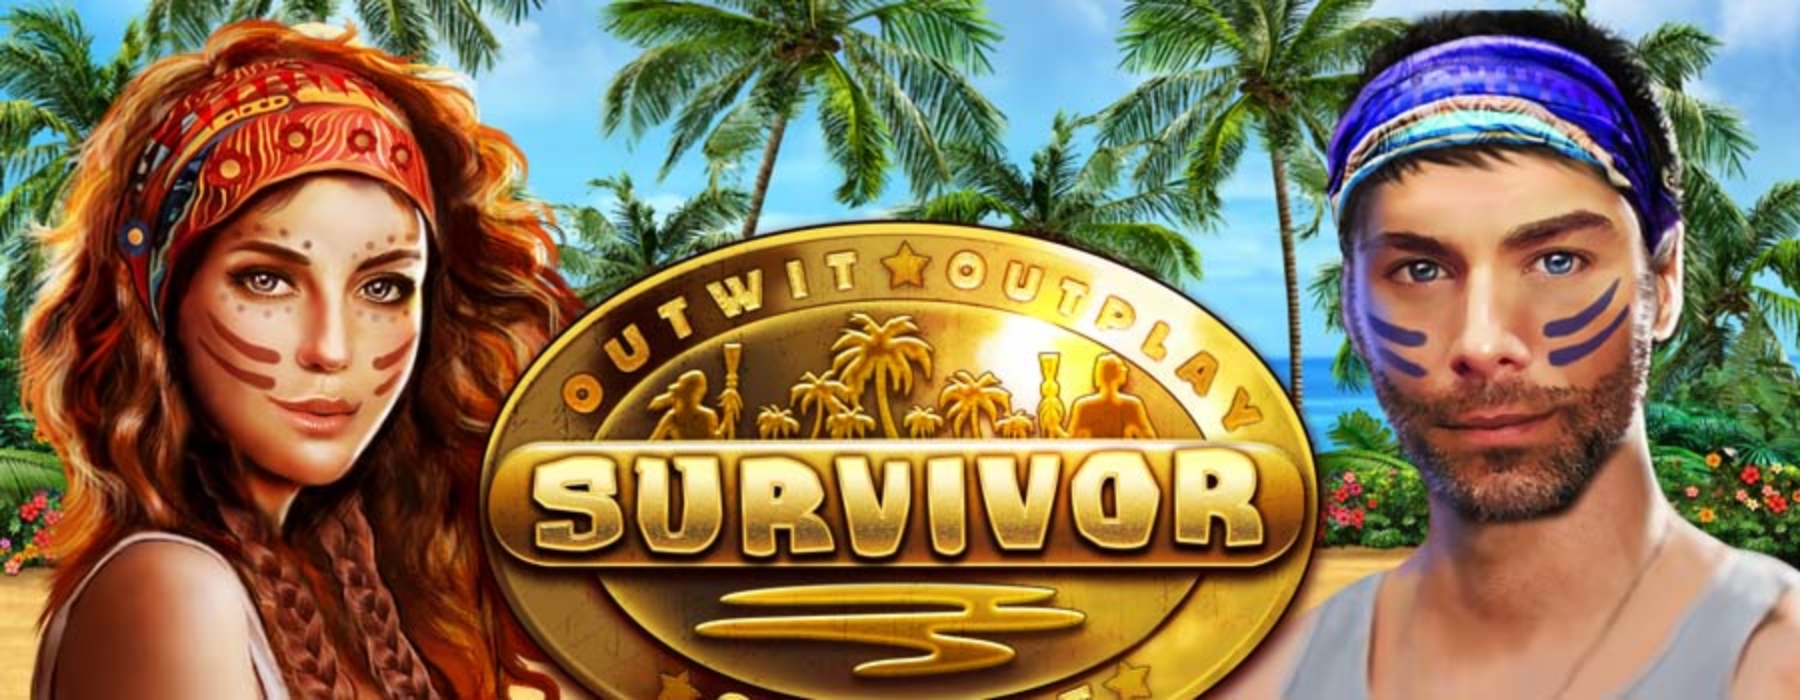 The Survivor Megaways Online Slot Demo Game by Big Time Gaming